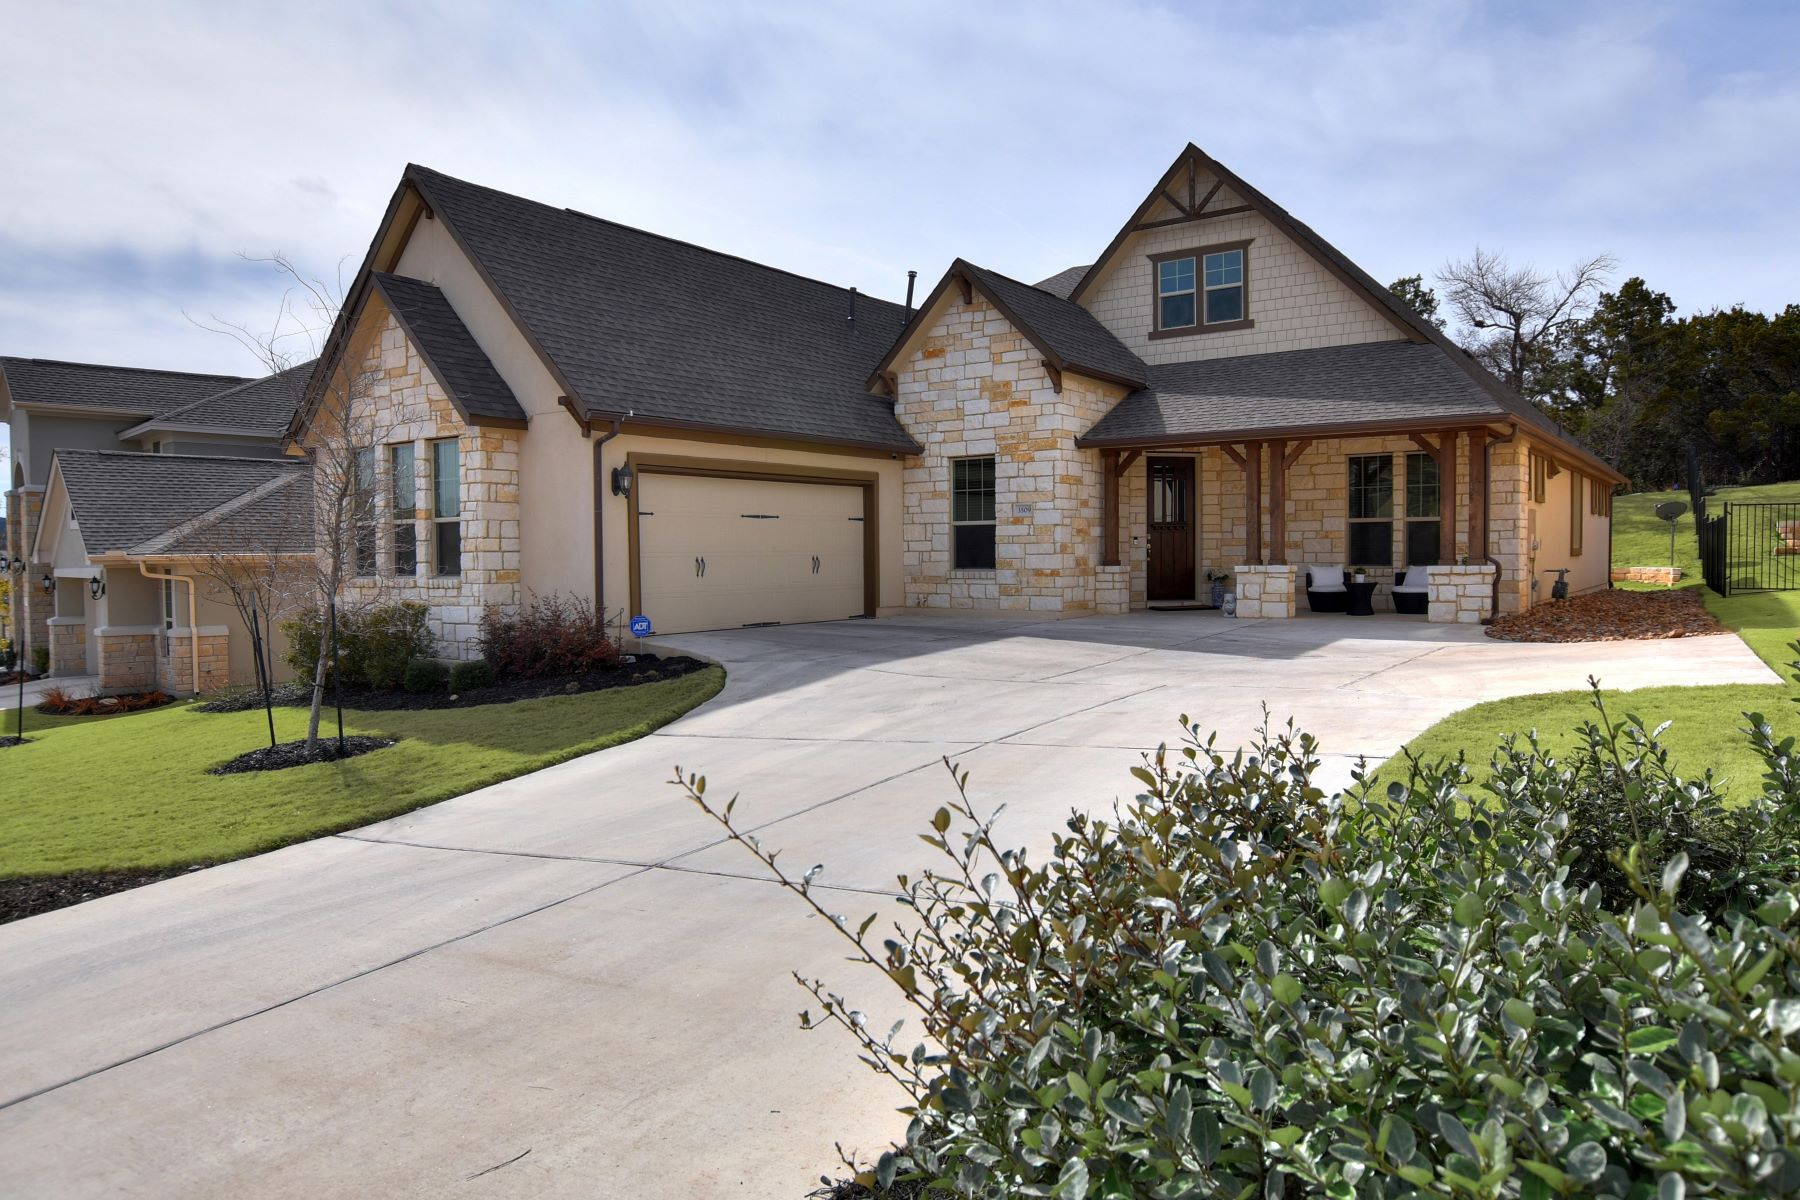 Single Family Home for Sale at Beautiful One-Story Home on Greenbelt Lot 3509 Venezia View Leander, Texas 78641 United States